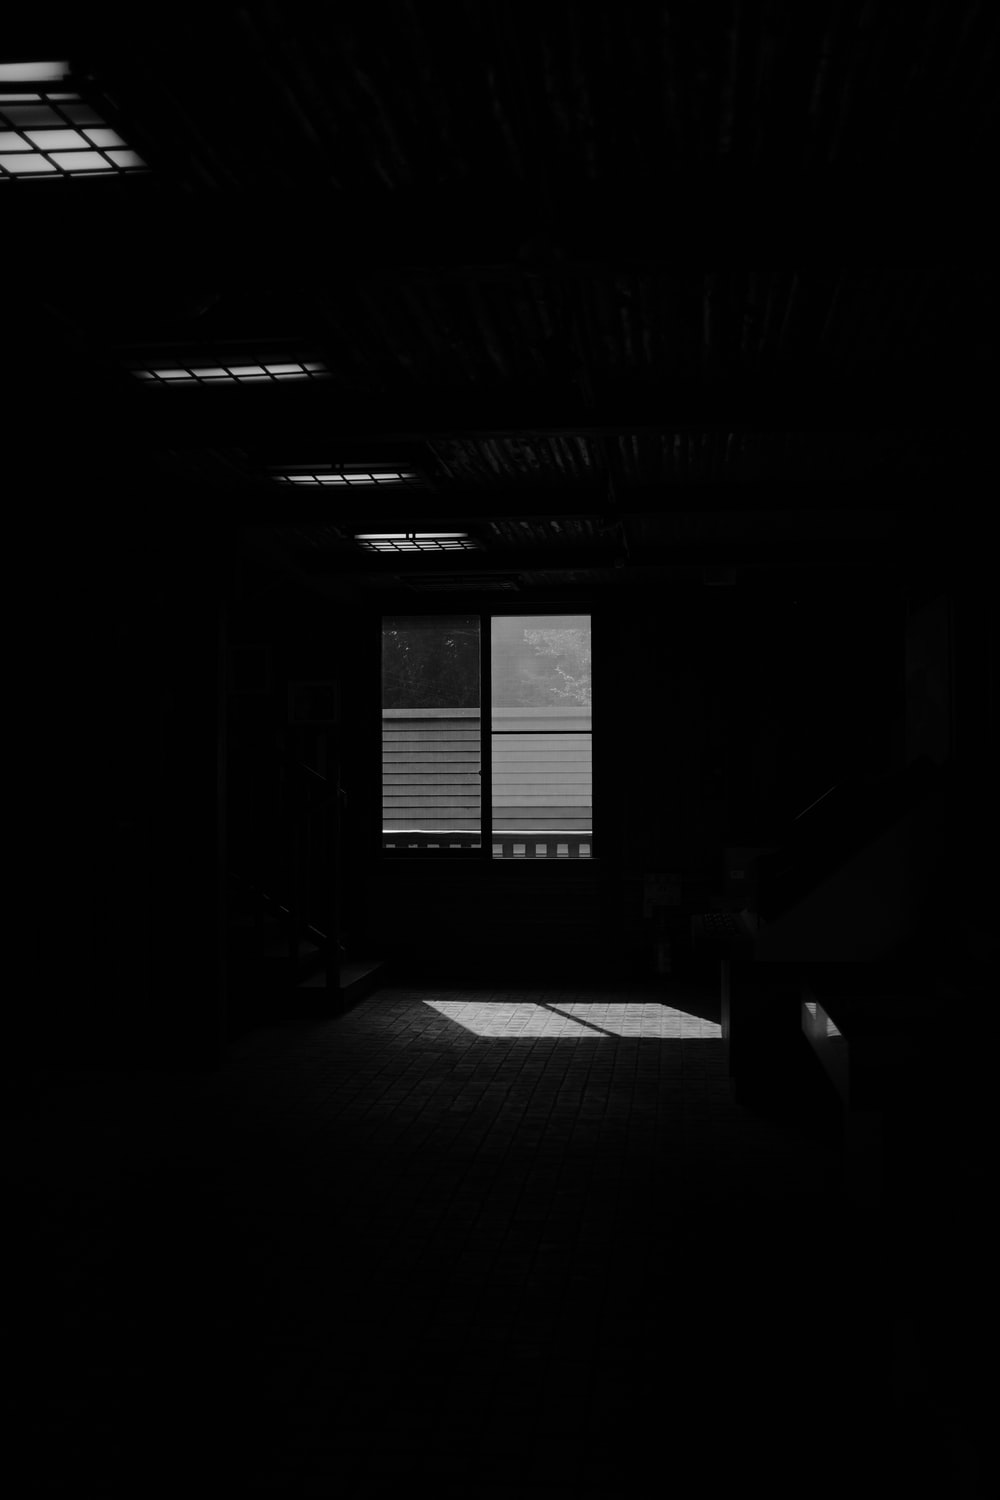 grayscale photo of a room